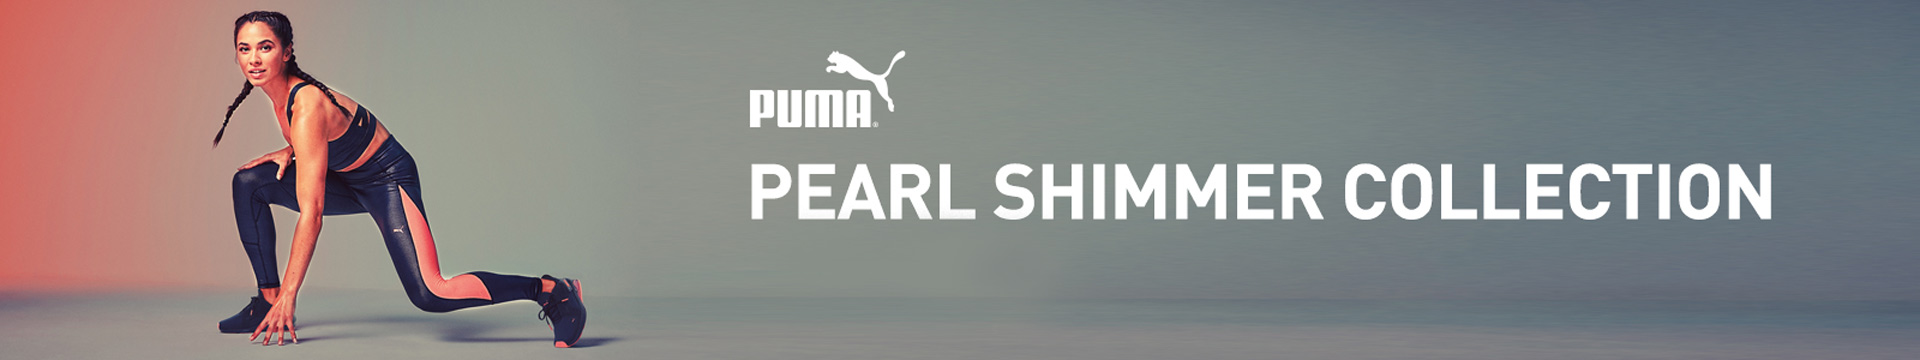 Puma Pearl Shimmer Collection